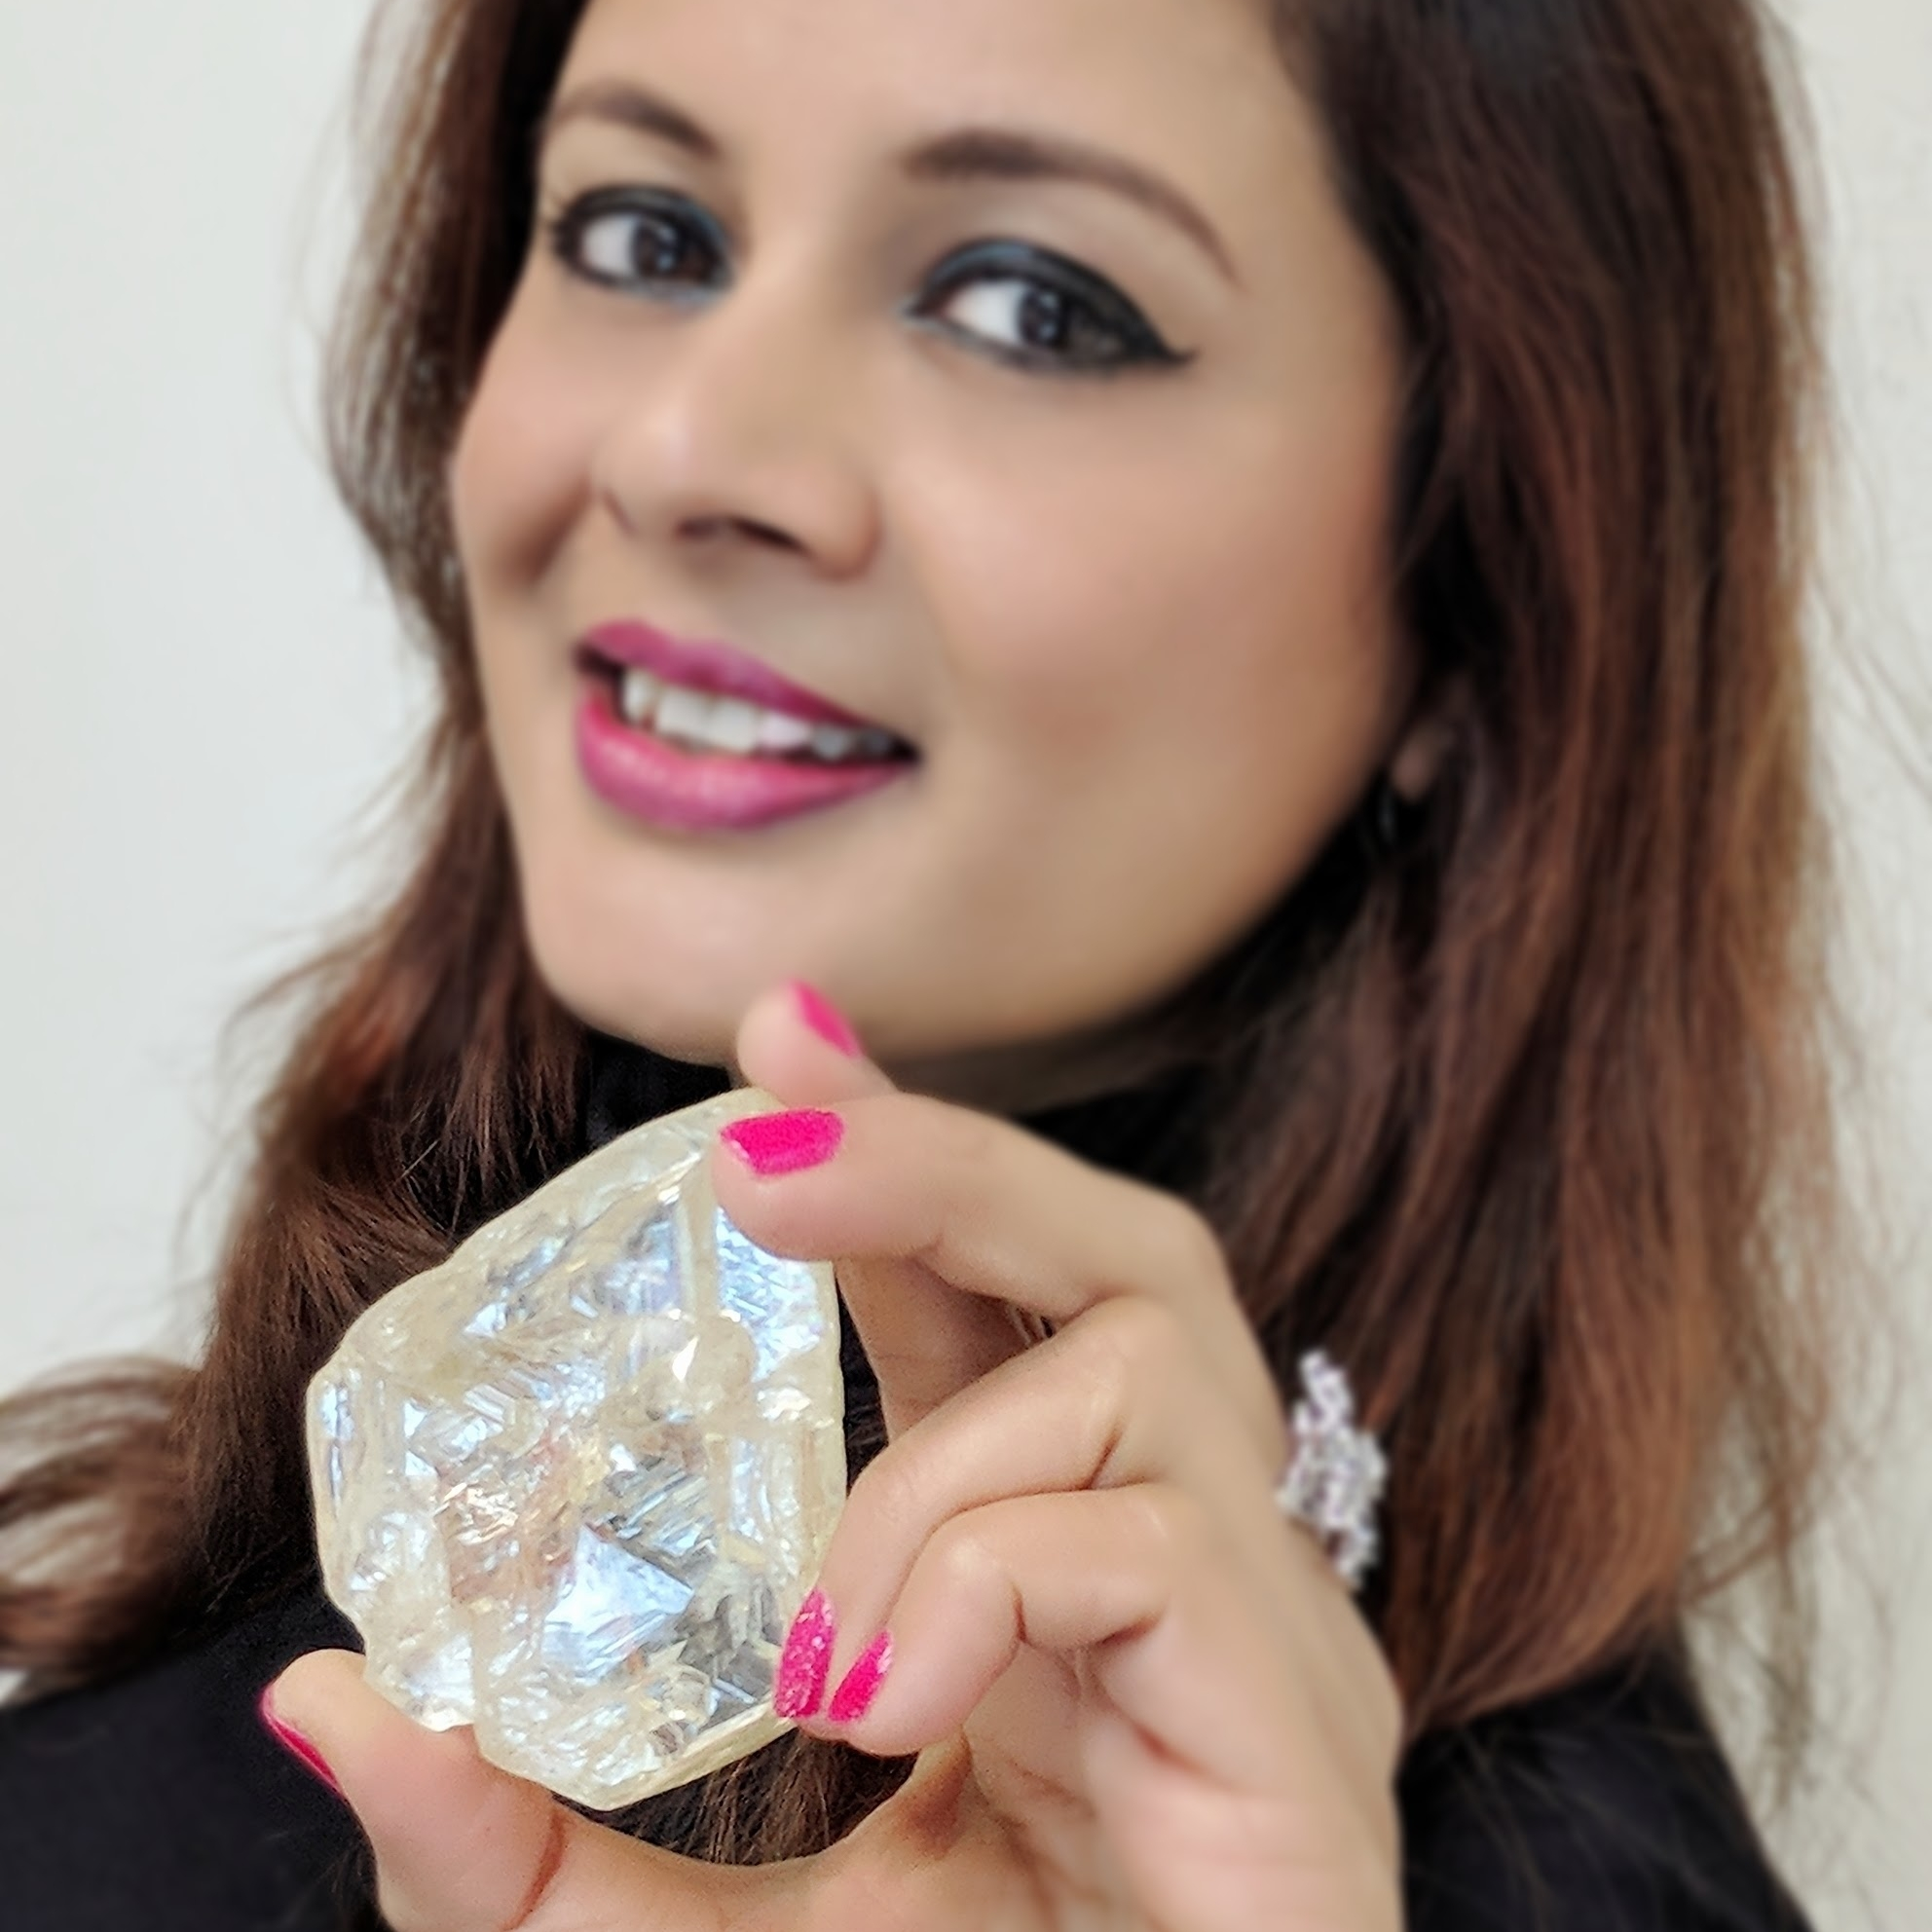 The    Peace Diamond    is the 15th largest diamond in the world. At 709-carat it was discovered in Kono region of Sierra Leone, the rough is 2.5 inches wide and 1 inch deep. In spite of offers to smuggle it, village leader Pastor Emanuel Momoh insisted that the diamond be sold through official government channels so that the financial benefits of this diamond would be properly shared with his village, district and the poverty stricken people of Sierra Leone. The Peace Diamond was sold to House of Graff on Dec 4, 2017. Image: Reena Ahluwalia holding the Peace Diamond at Rapaport New York.